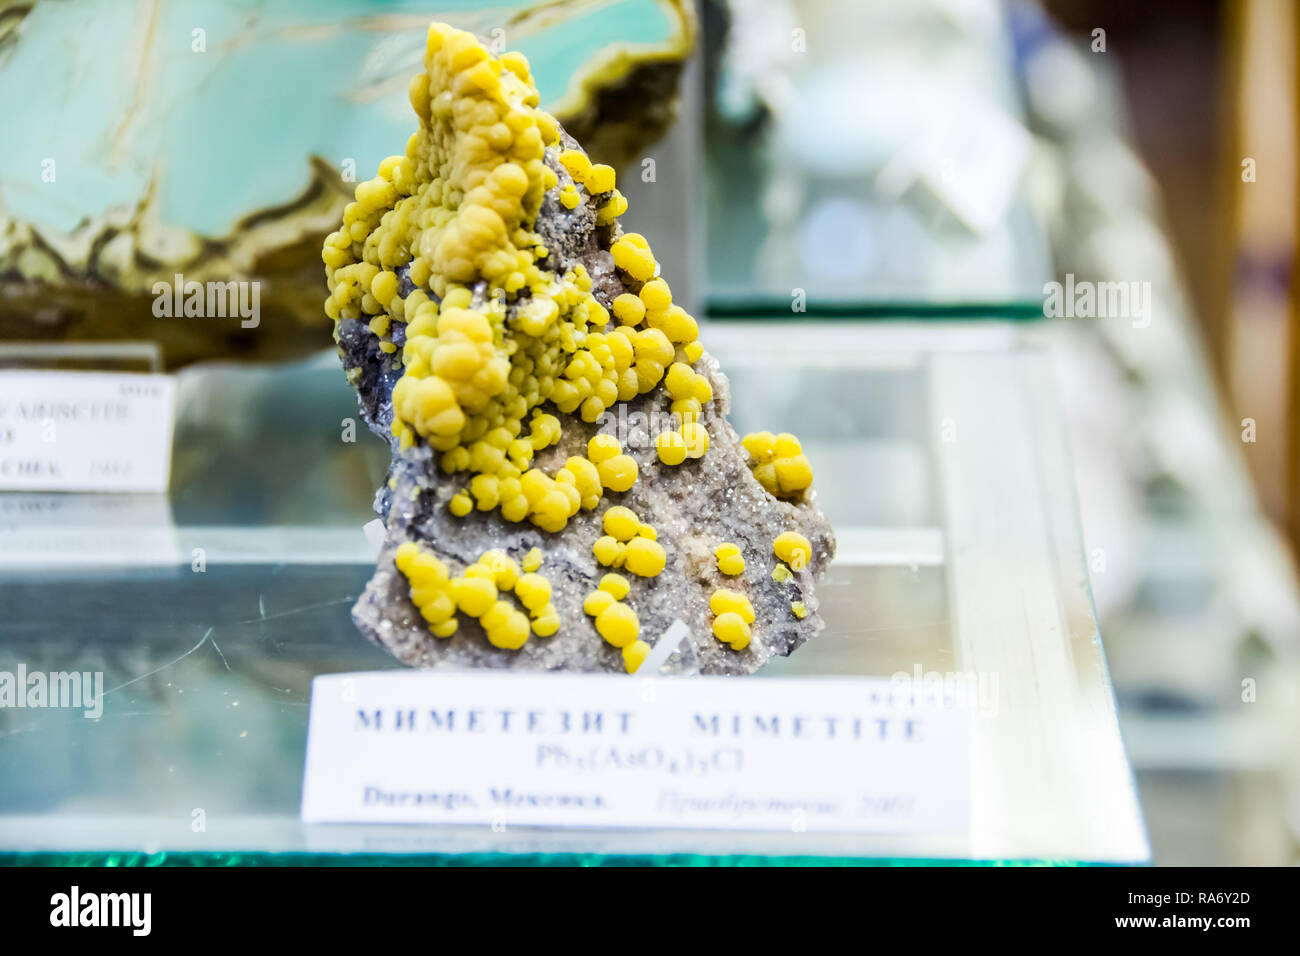 Fersman Museum, Moscow, Russia - February 14, 2018: Meteorites and minerals in the museum. Mineralogical museum - Stock Image